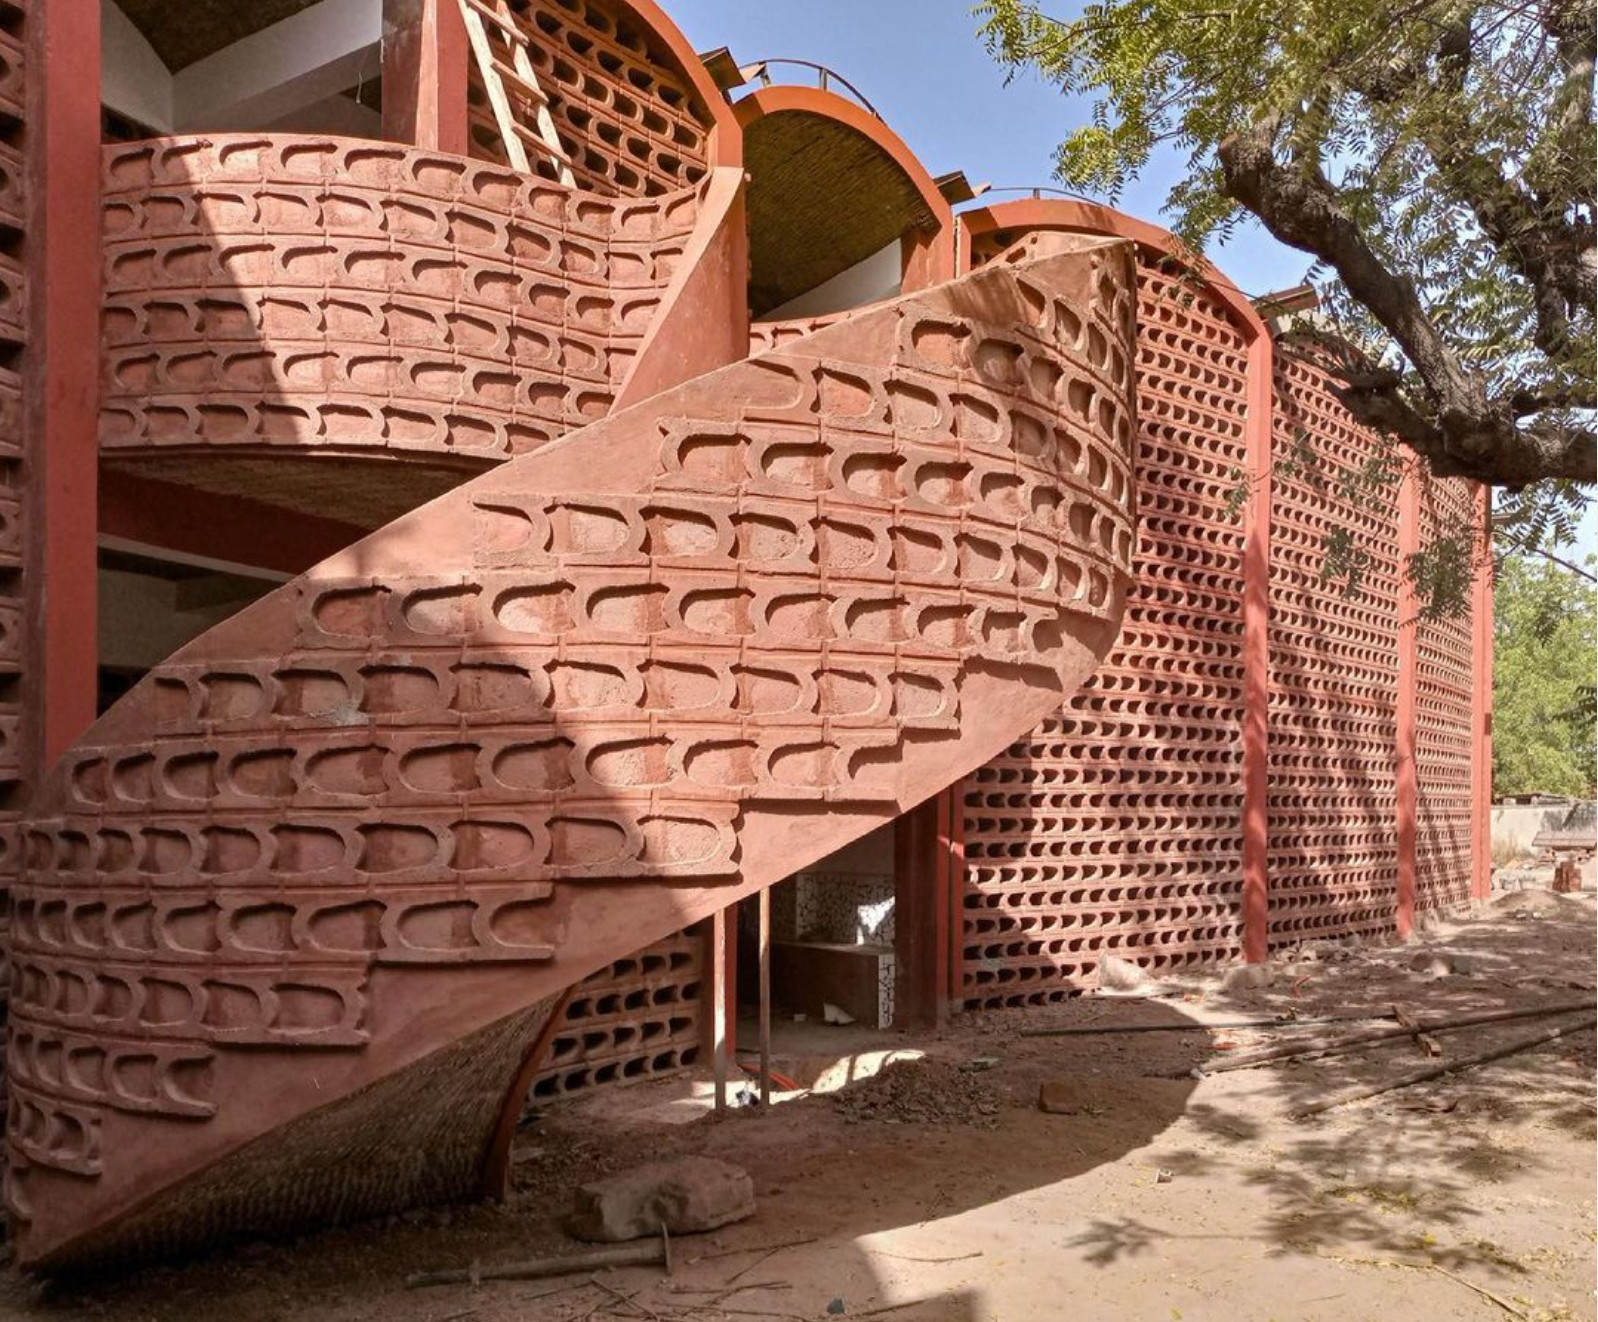 Take a look at the beautiful brick hospital the Albers Foundation is building in Senegal